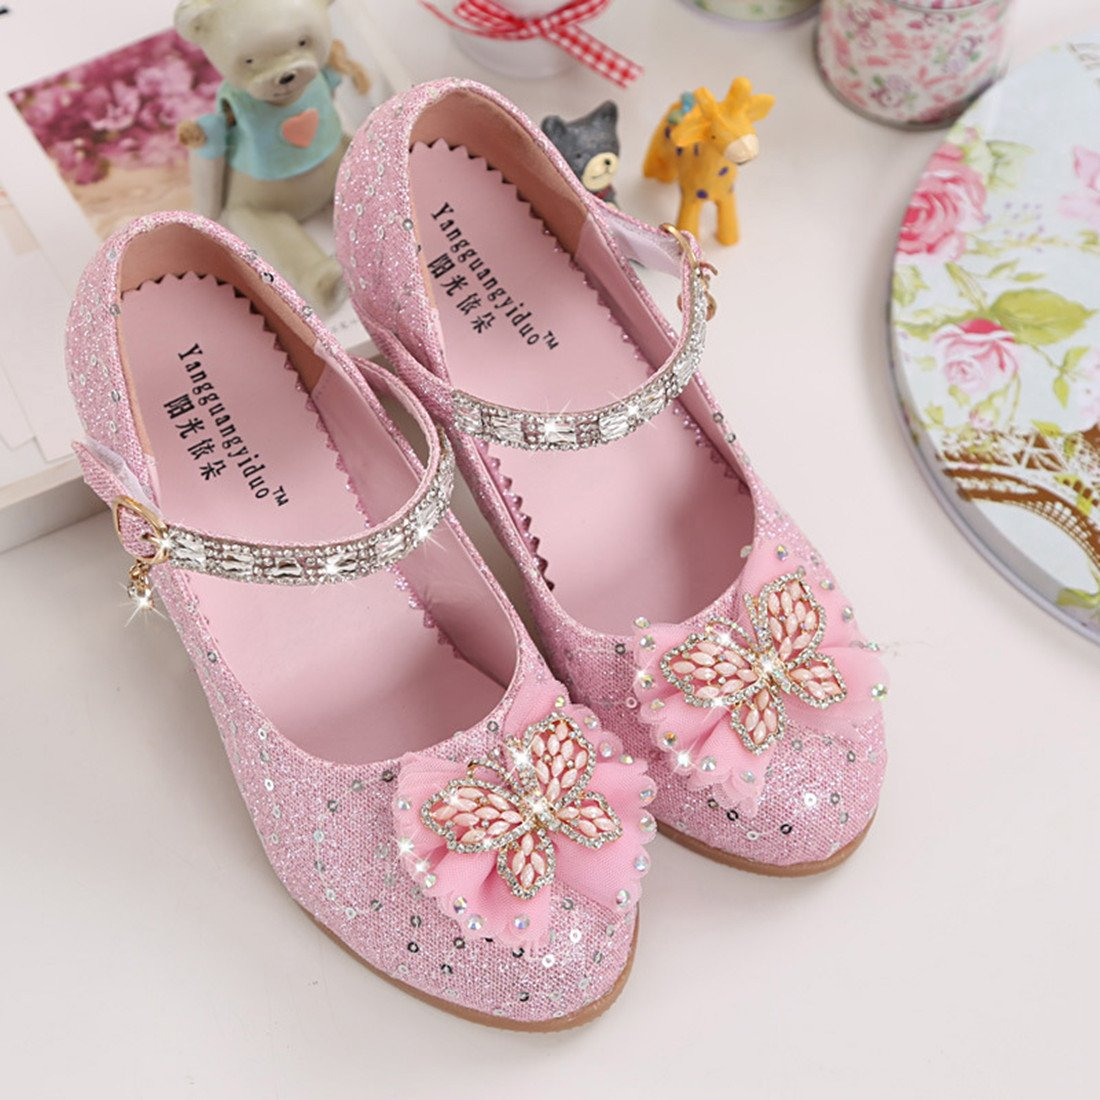 Toddler Littlle Big Kids Girls Glitter Wedding Shoes Dancing Party Mary Jane Flat Shoes Pink Size 2 by YANGXING (Image #3)